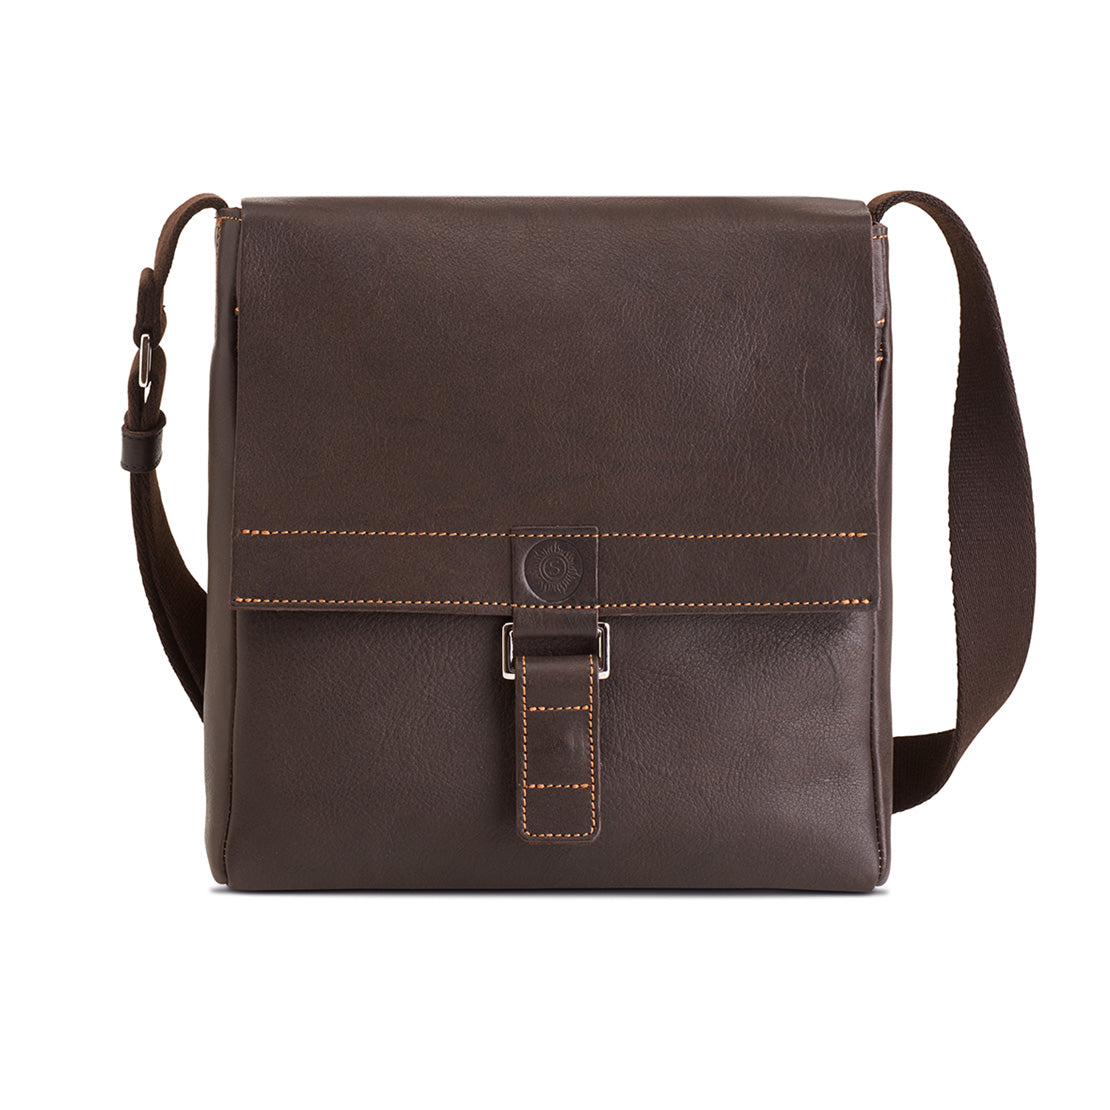 Granada K Shoulder Bag  |  Sonnenleder